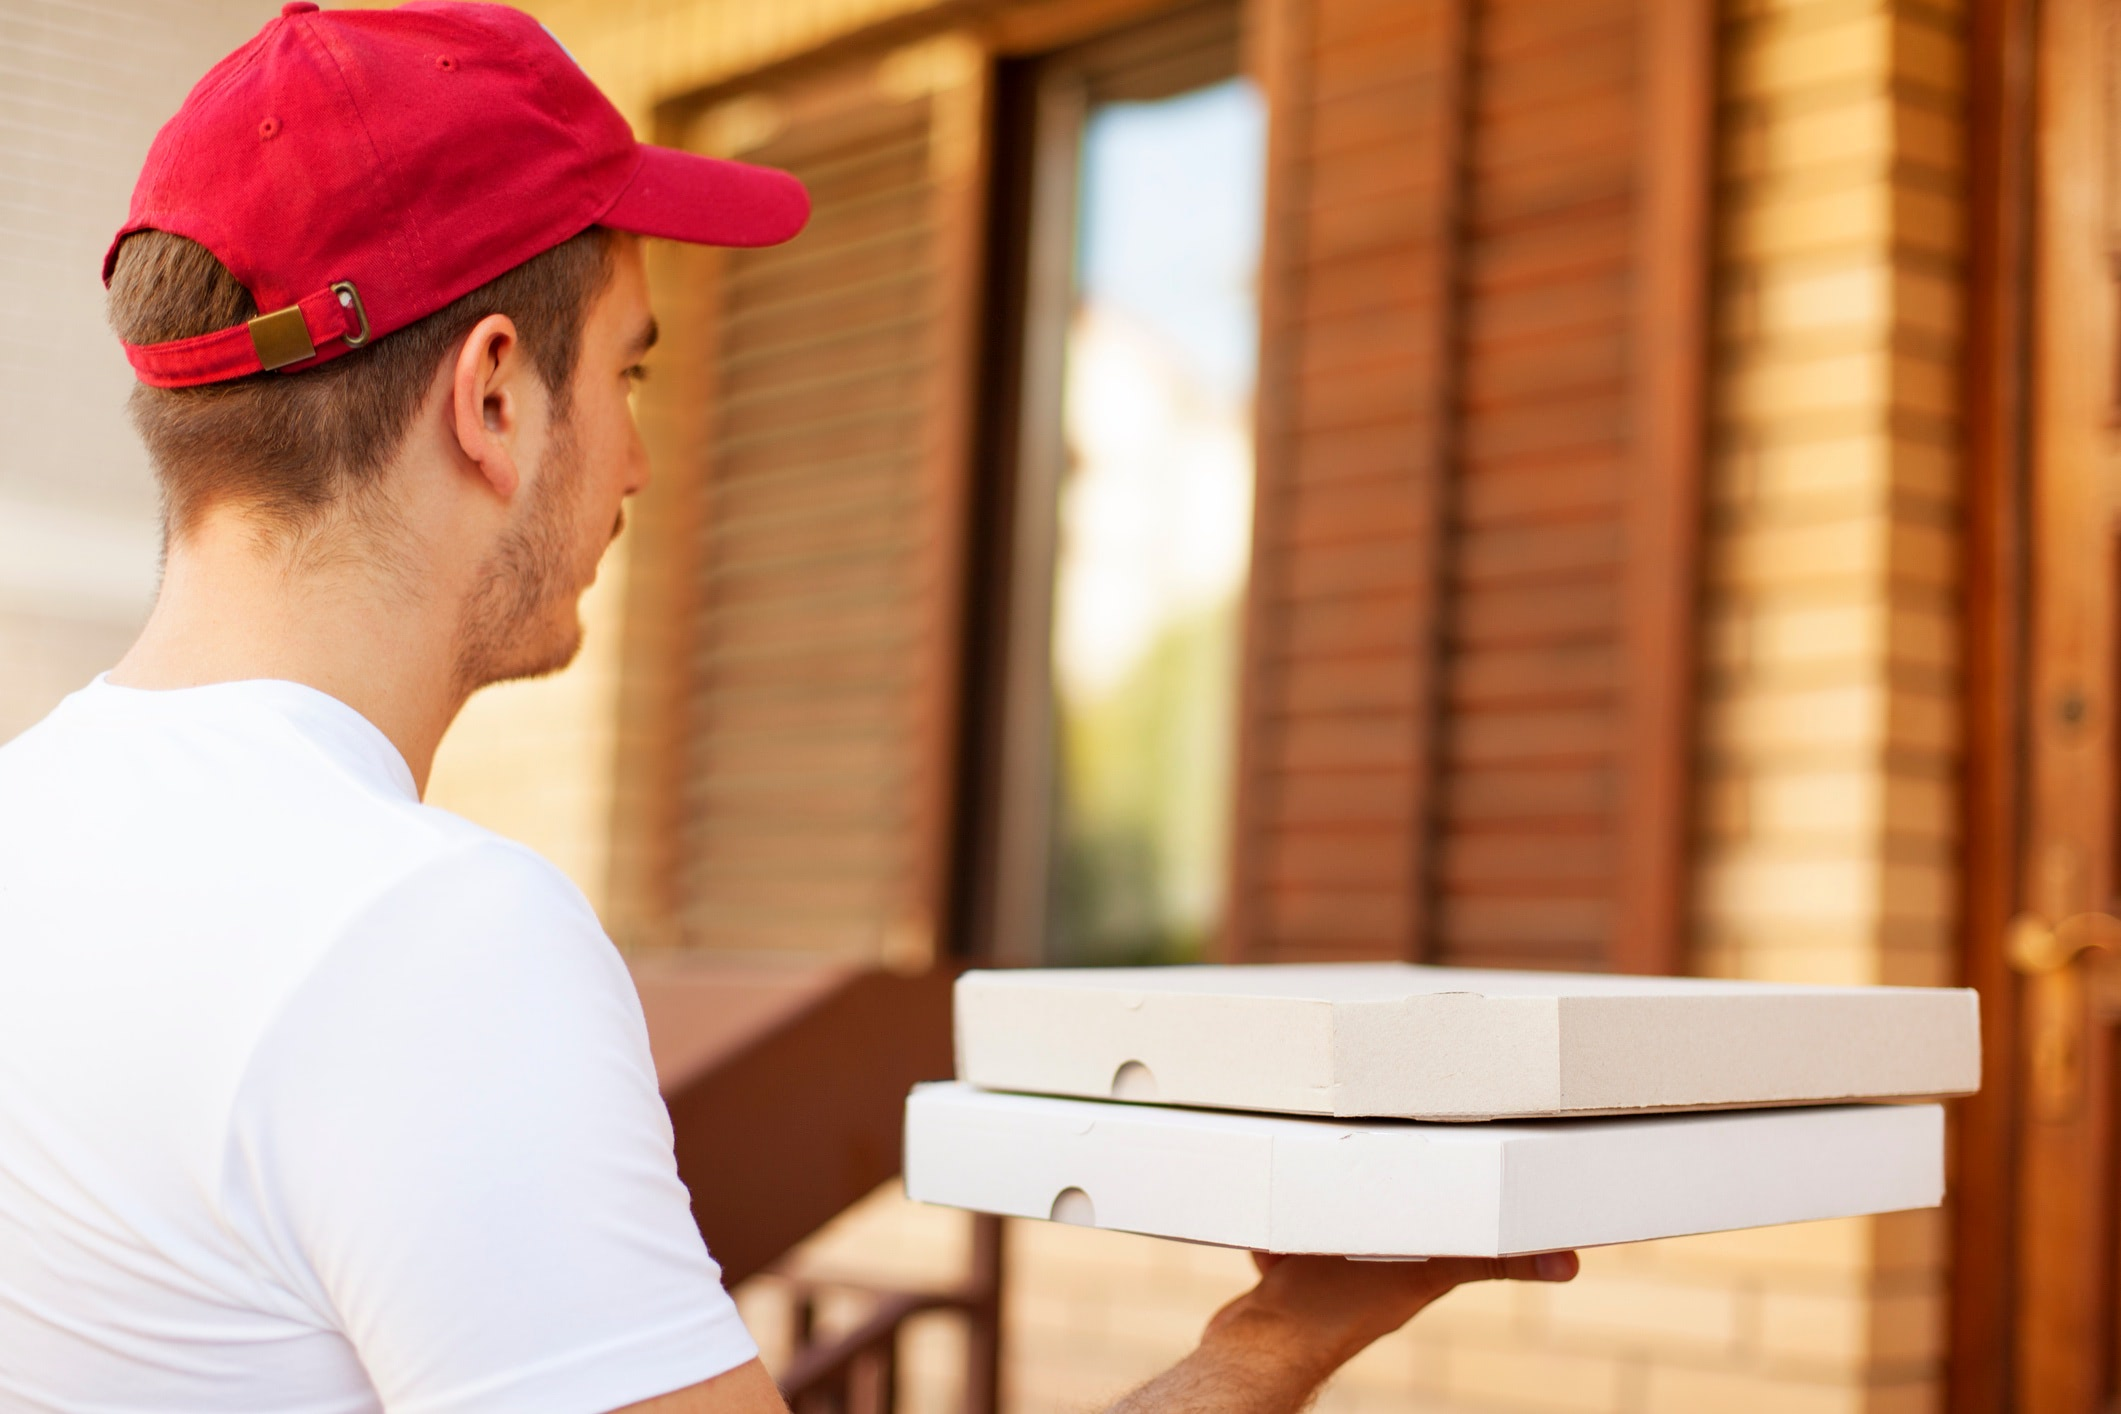 pizzeria-offering-delivery.jpg